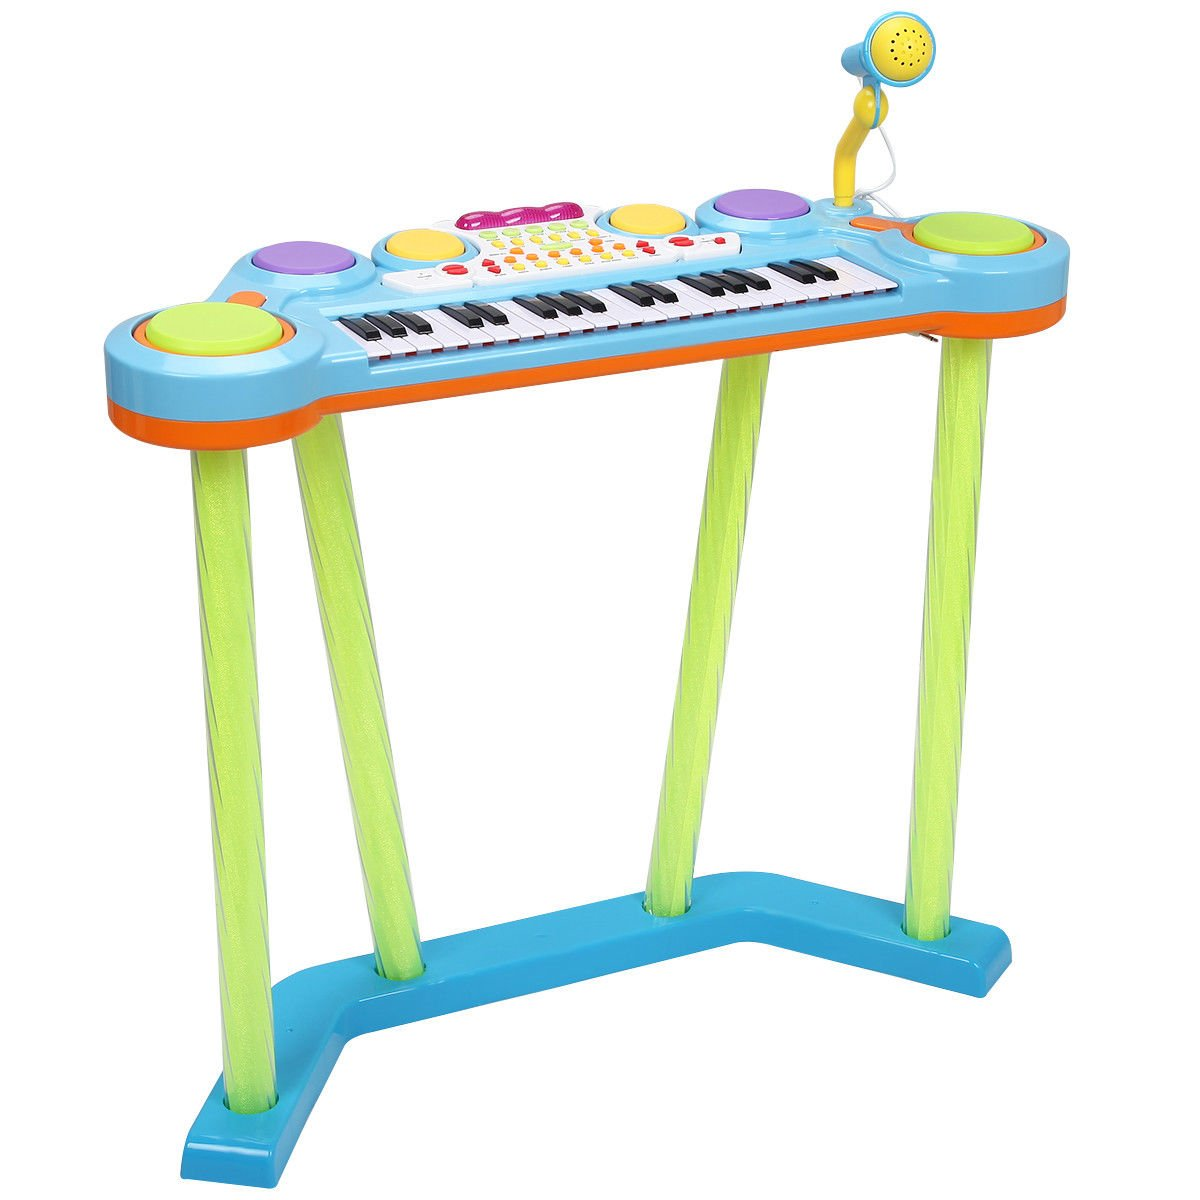 Costzon 2 In 1 Electronic Keyboard and Drum Musical 37-Key Toy Electronic Organ Piano and Drum with Microphone and Flashing Legs (Blue)